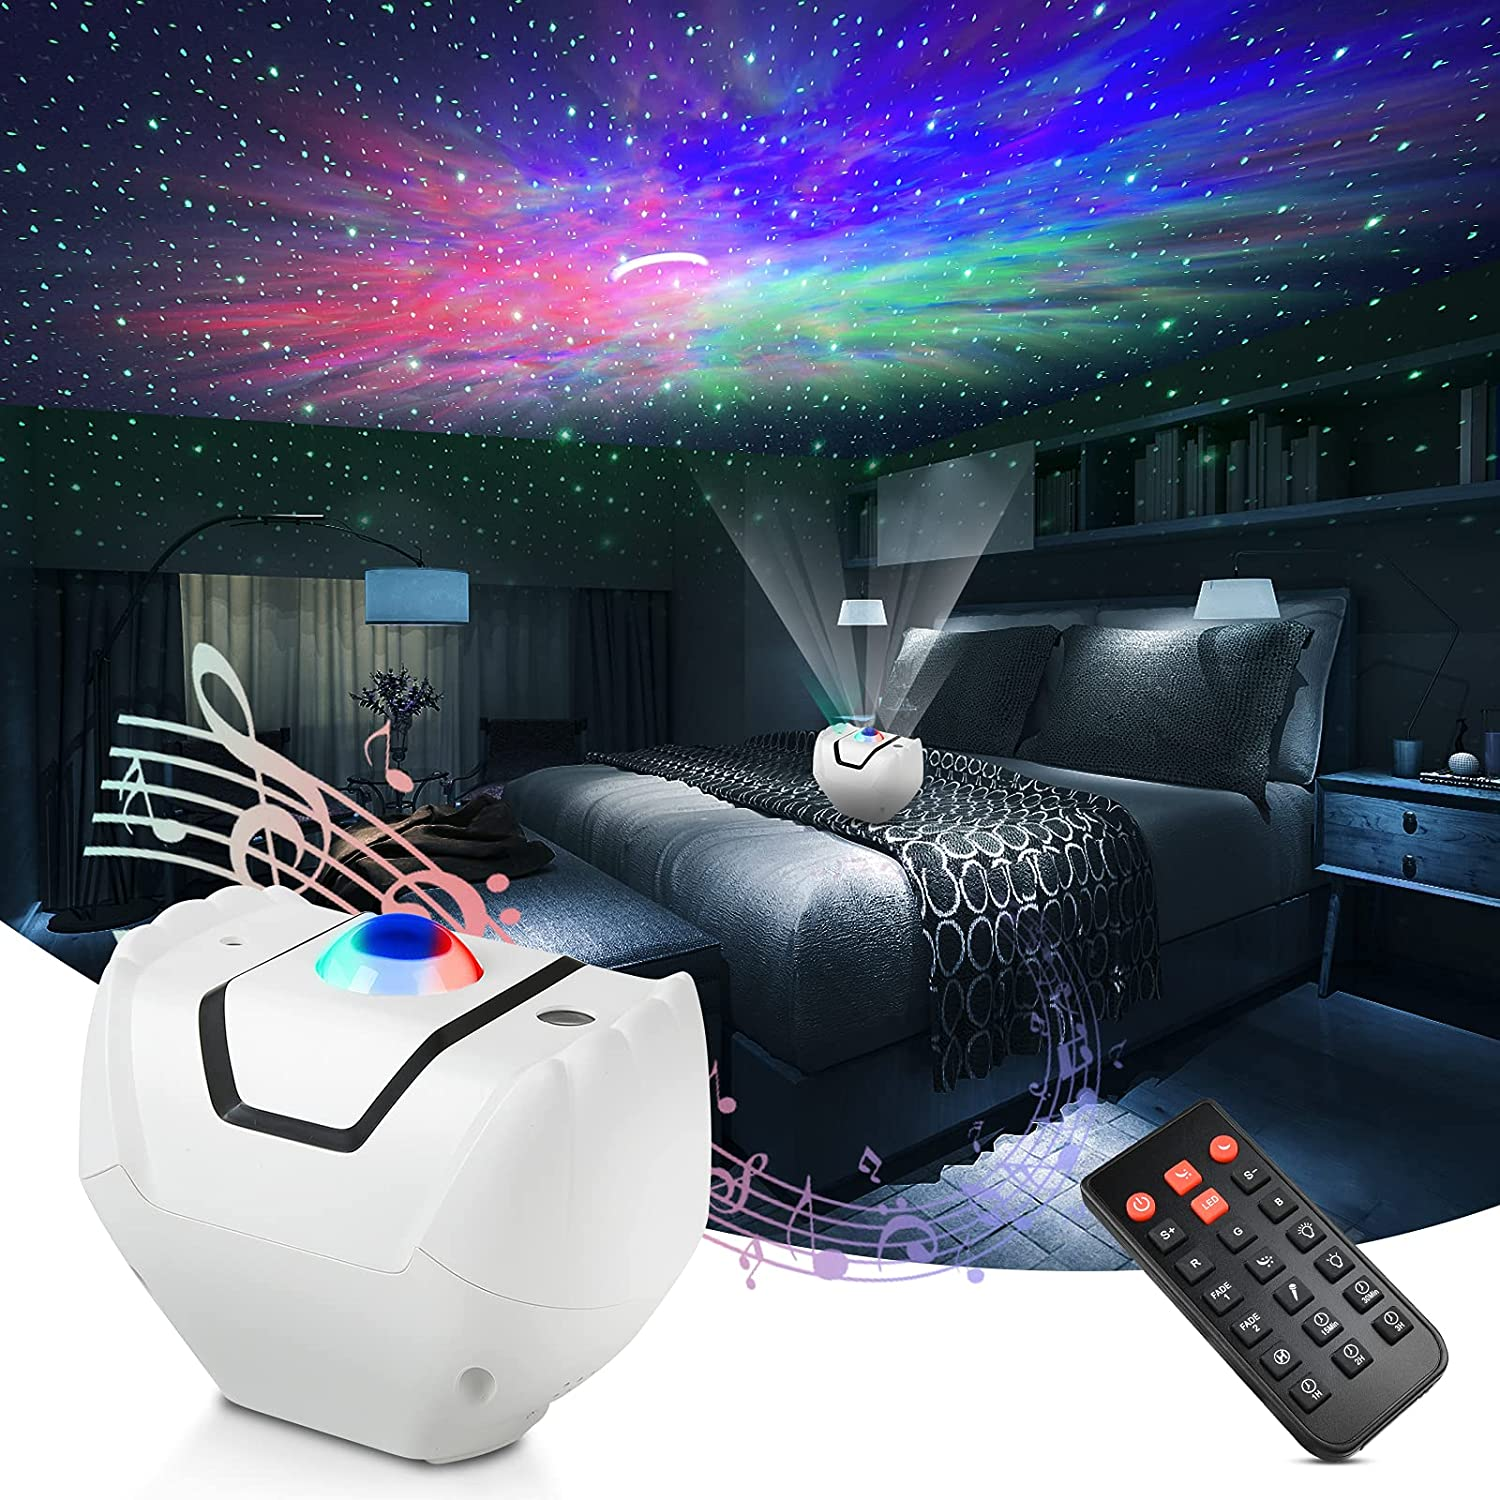 Star Projector, Galaxy Projector with Remote Control, 3 in 1 Night Light, Led Nebula Cloud Galaxy Starry Projector for Baby Kids Adult, Party/Car/Bedroom Decor for Teen Girls